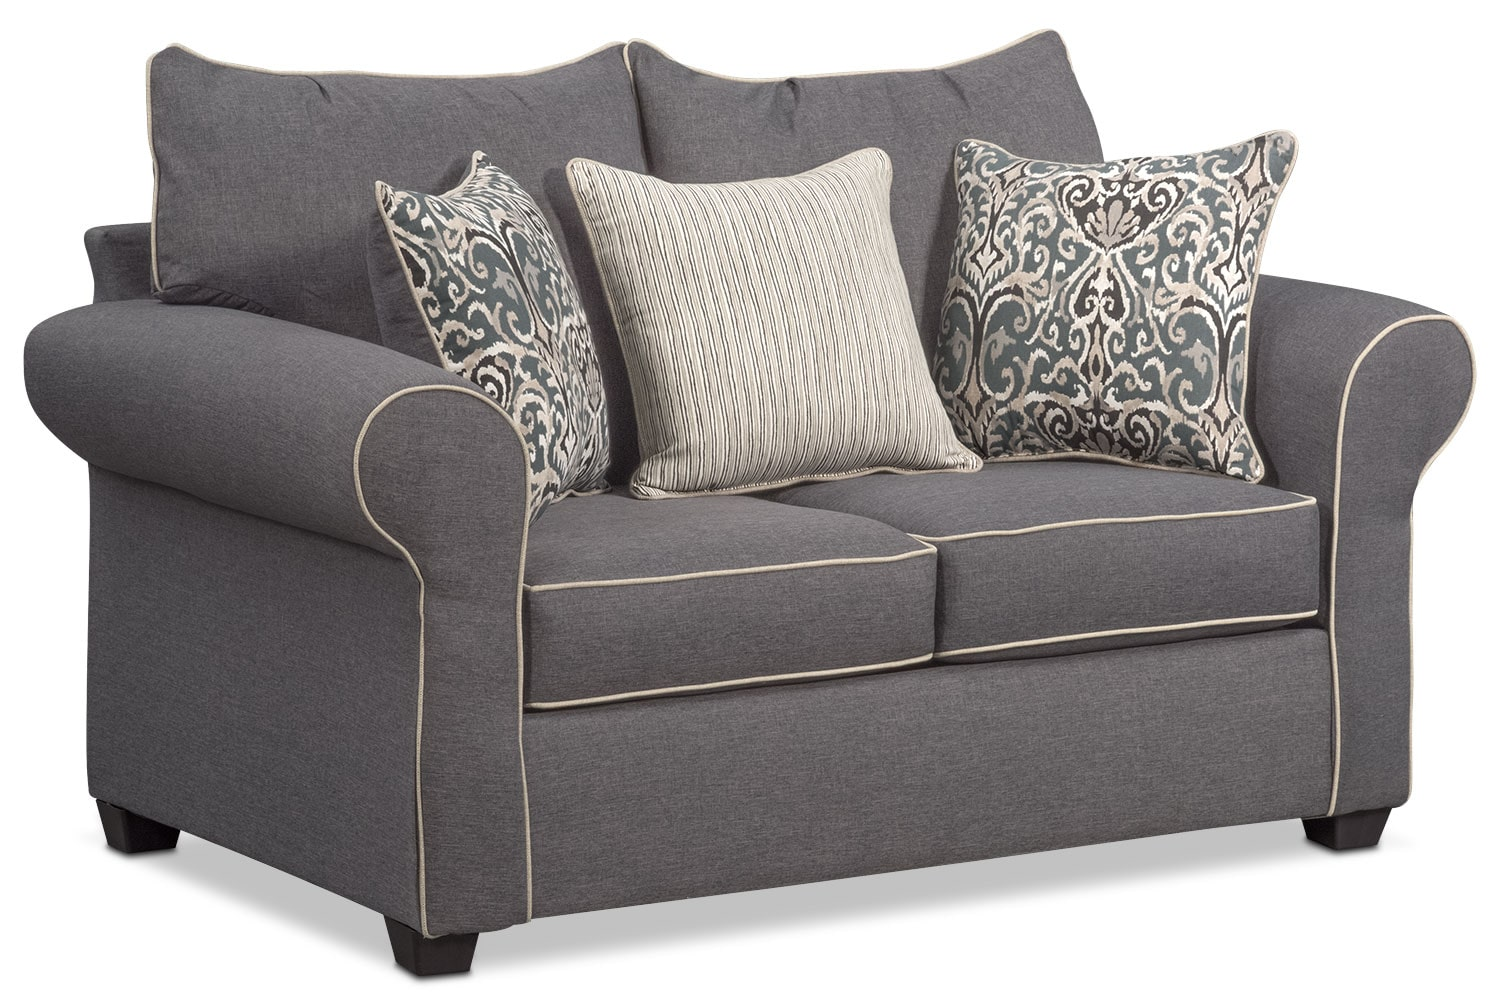 Carla Queen Memory Foam Sleeper Sofa, Loveseat, And Accent Chair Set   Gray  By Factory Outlet